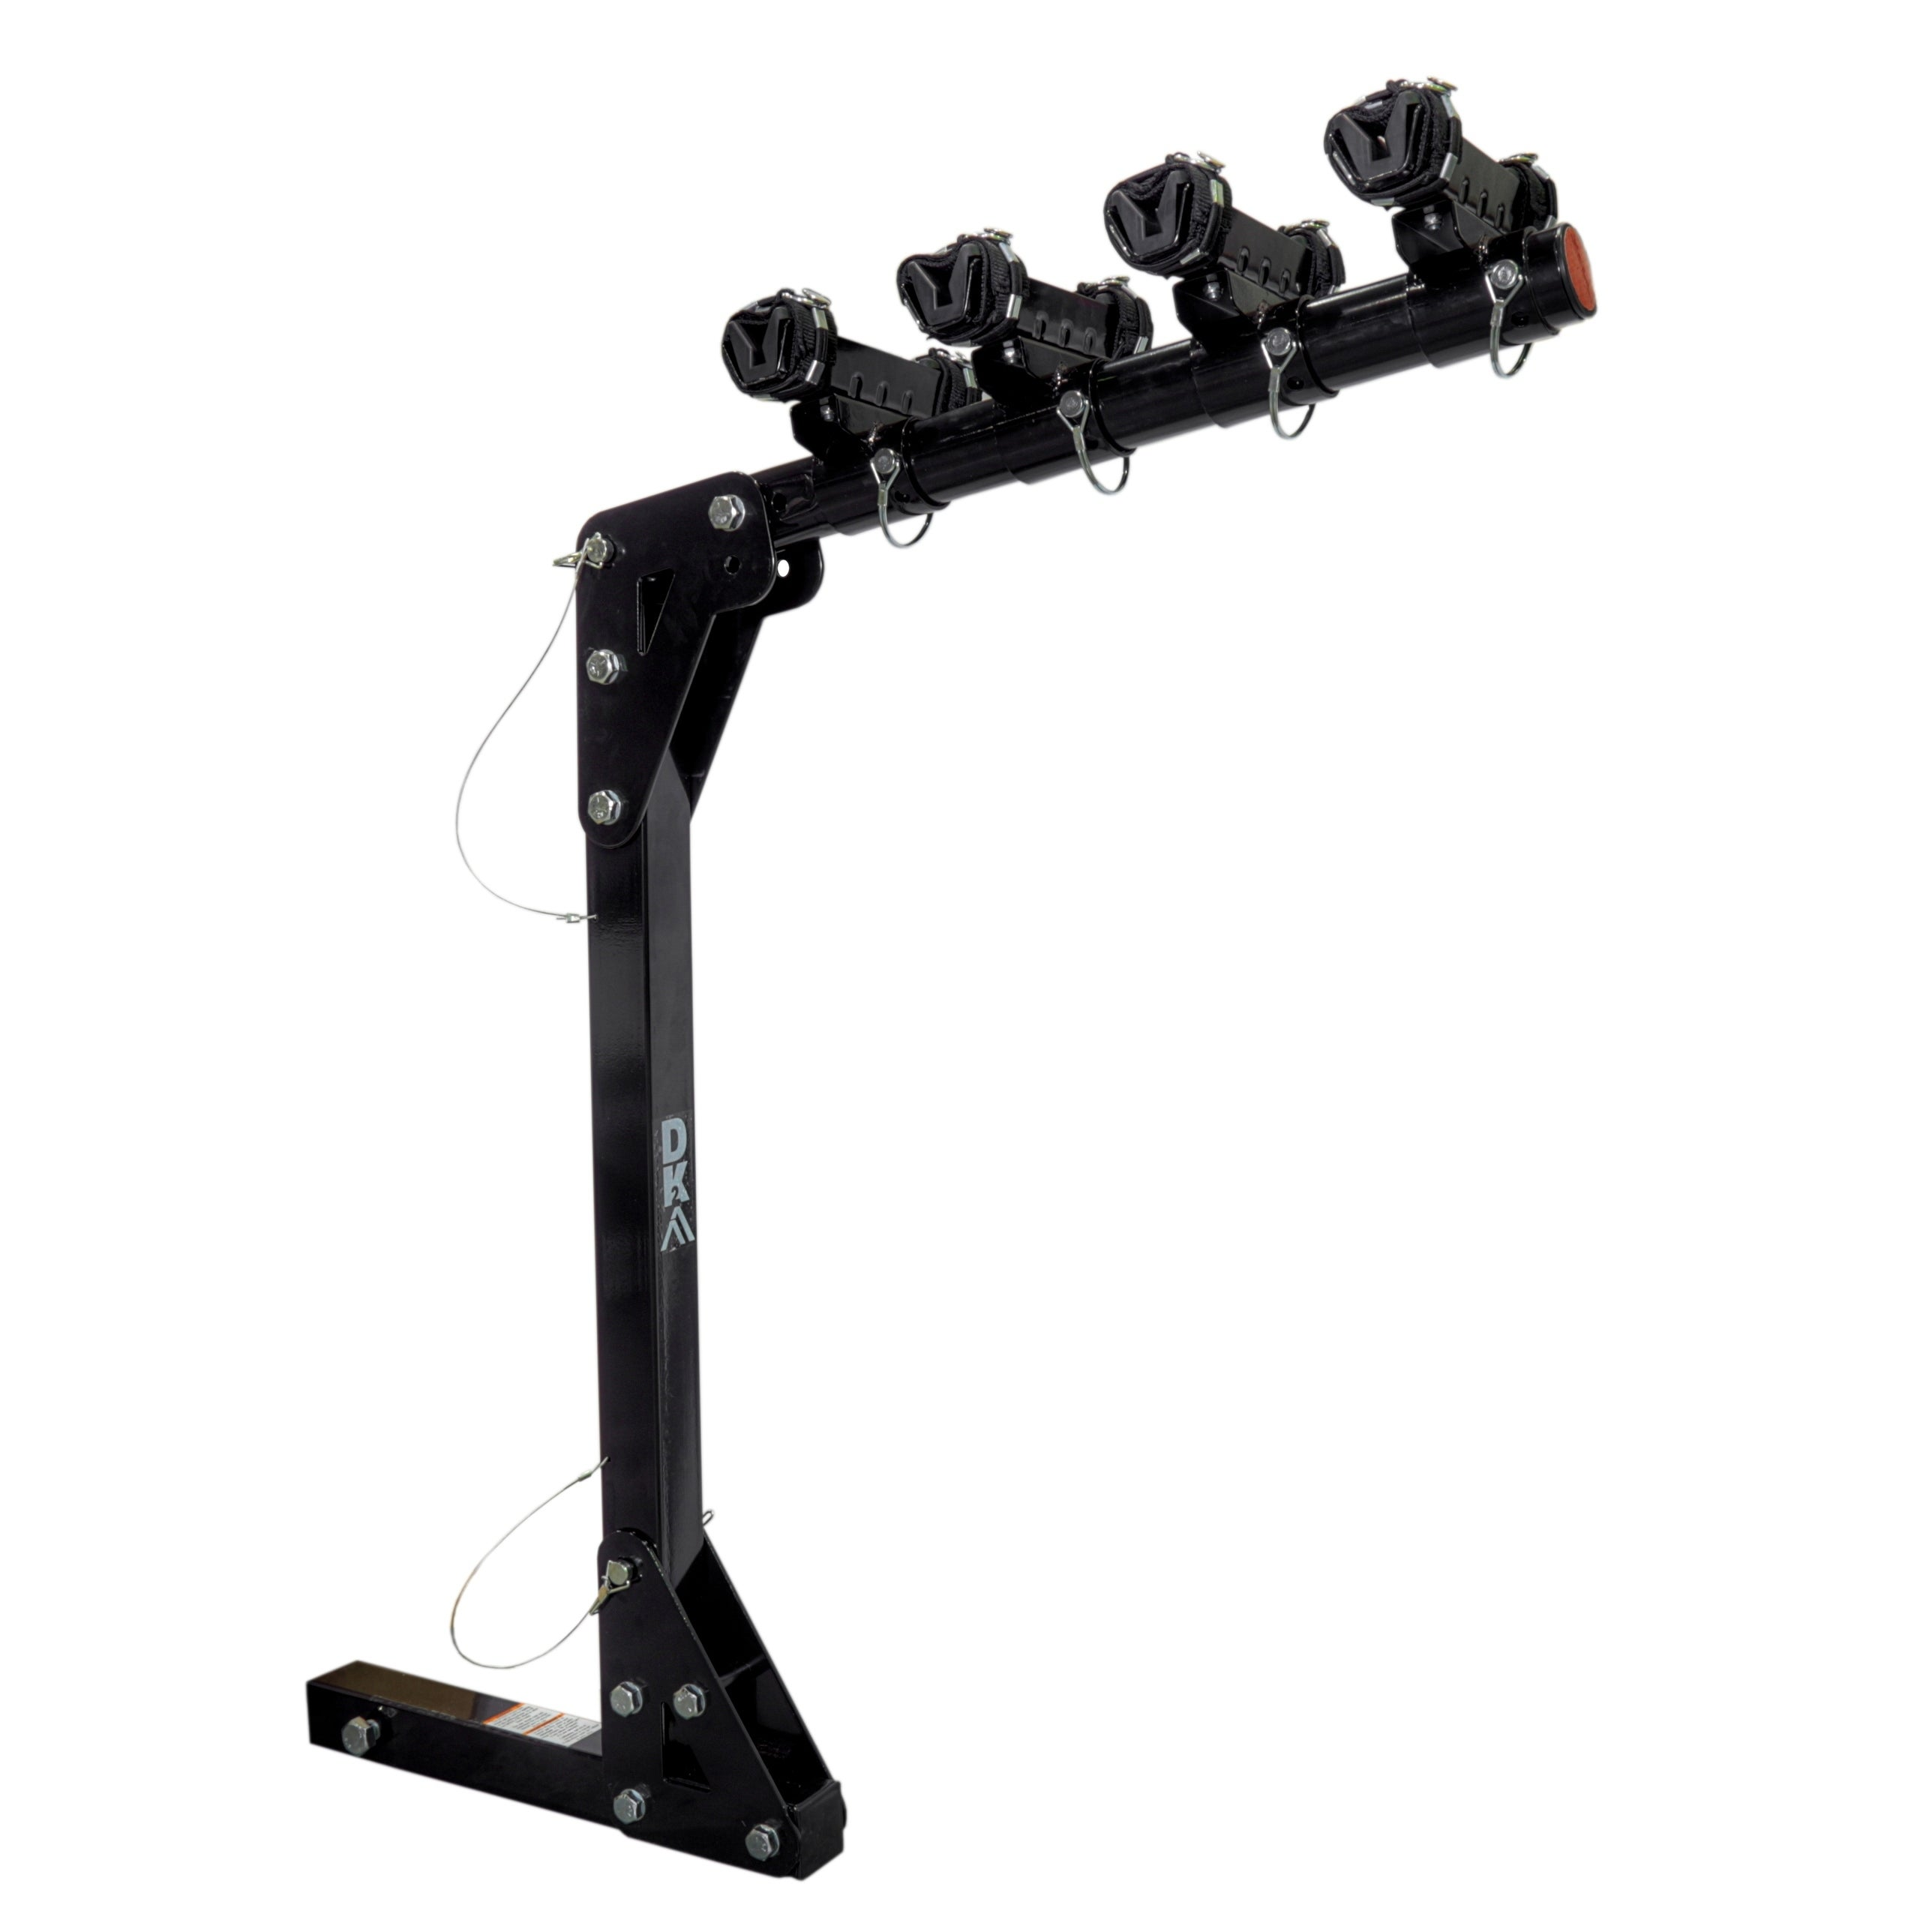 K2 DK2 Hitch Mounted Bicycle Carrier, Black